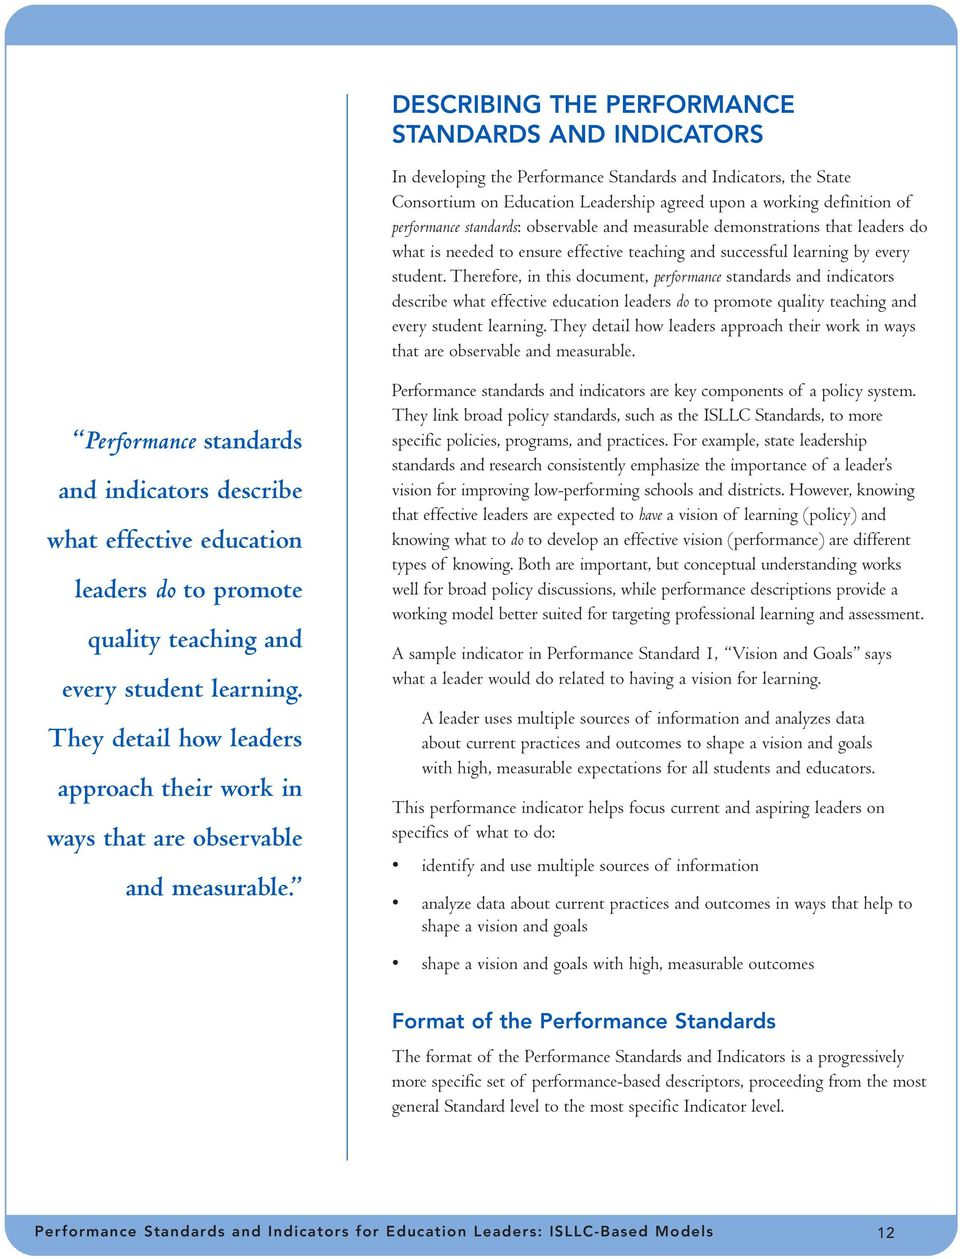 Therefore, in this document, performance standards and indicators describe what effective education leaders do to promote quality teaching and every student learning.